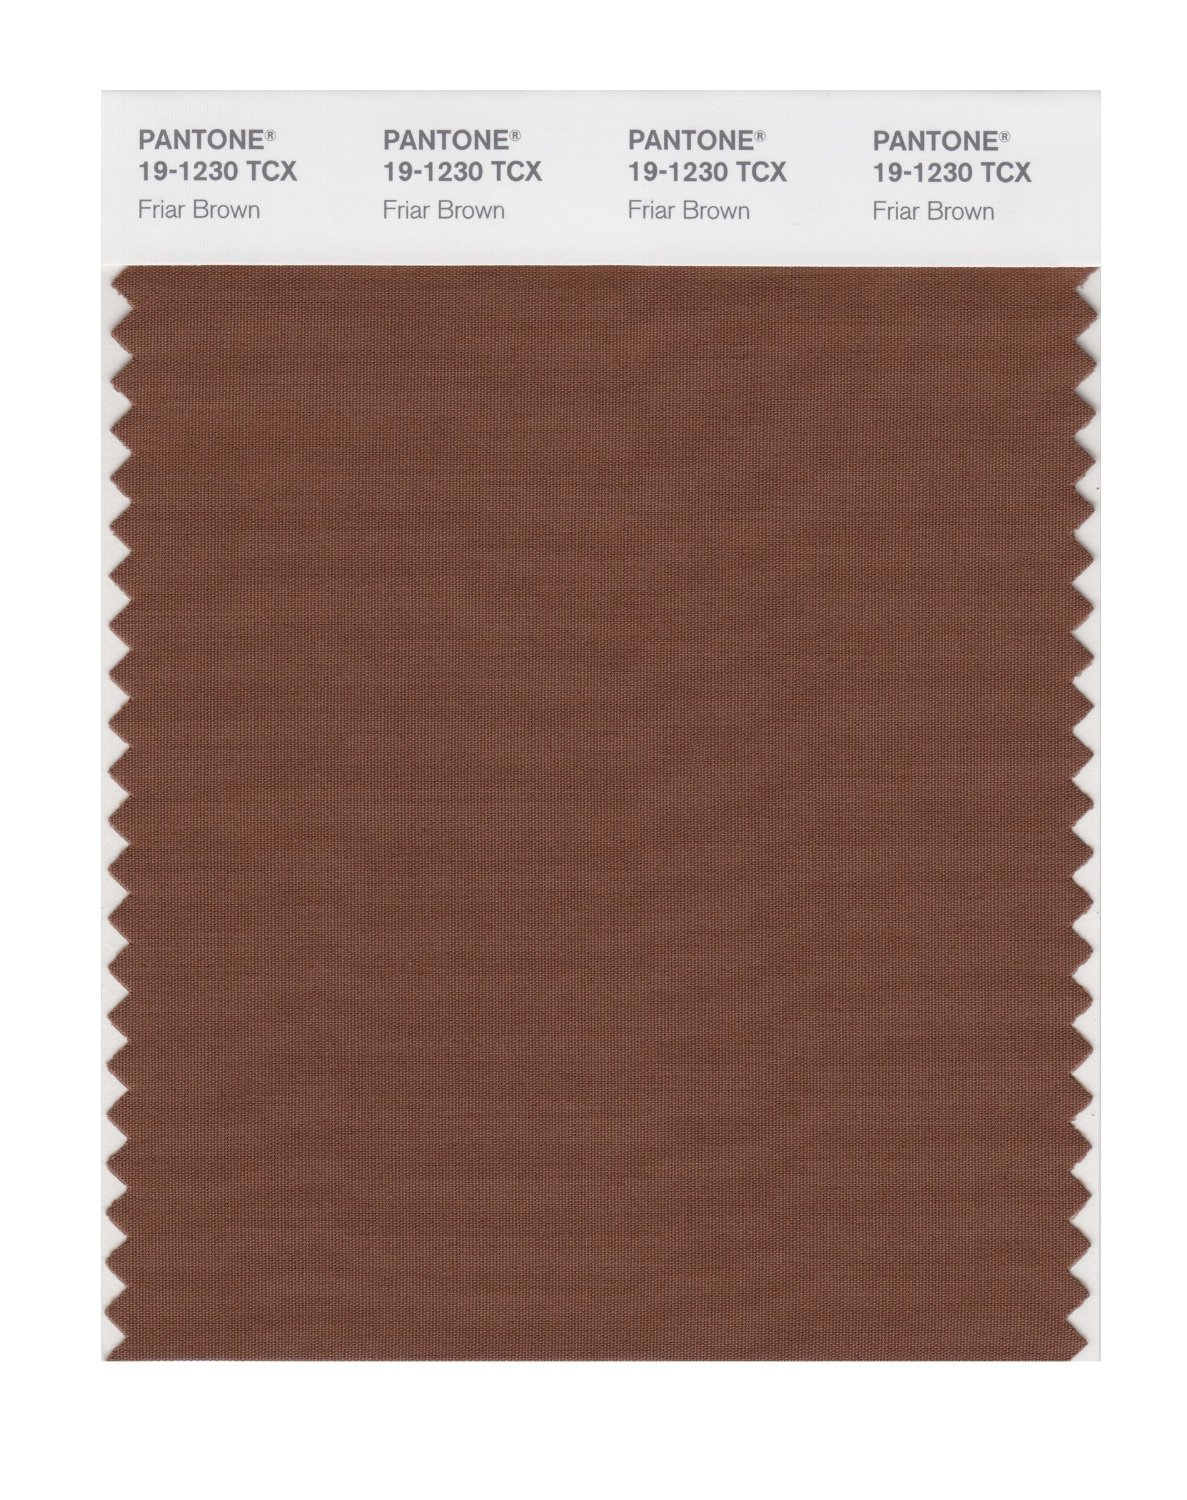 Pantone Smart Swatch 19-1230 Friar Brown